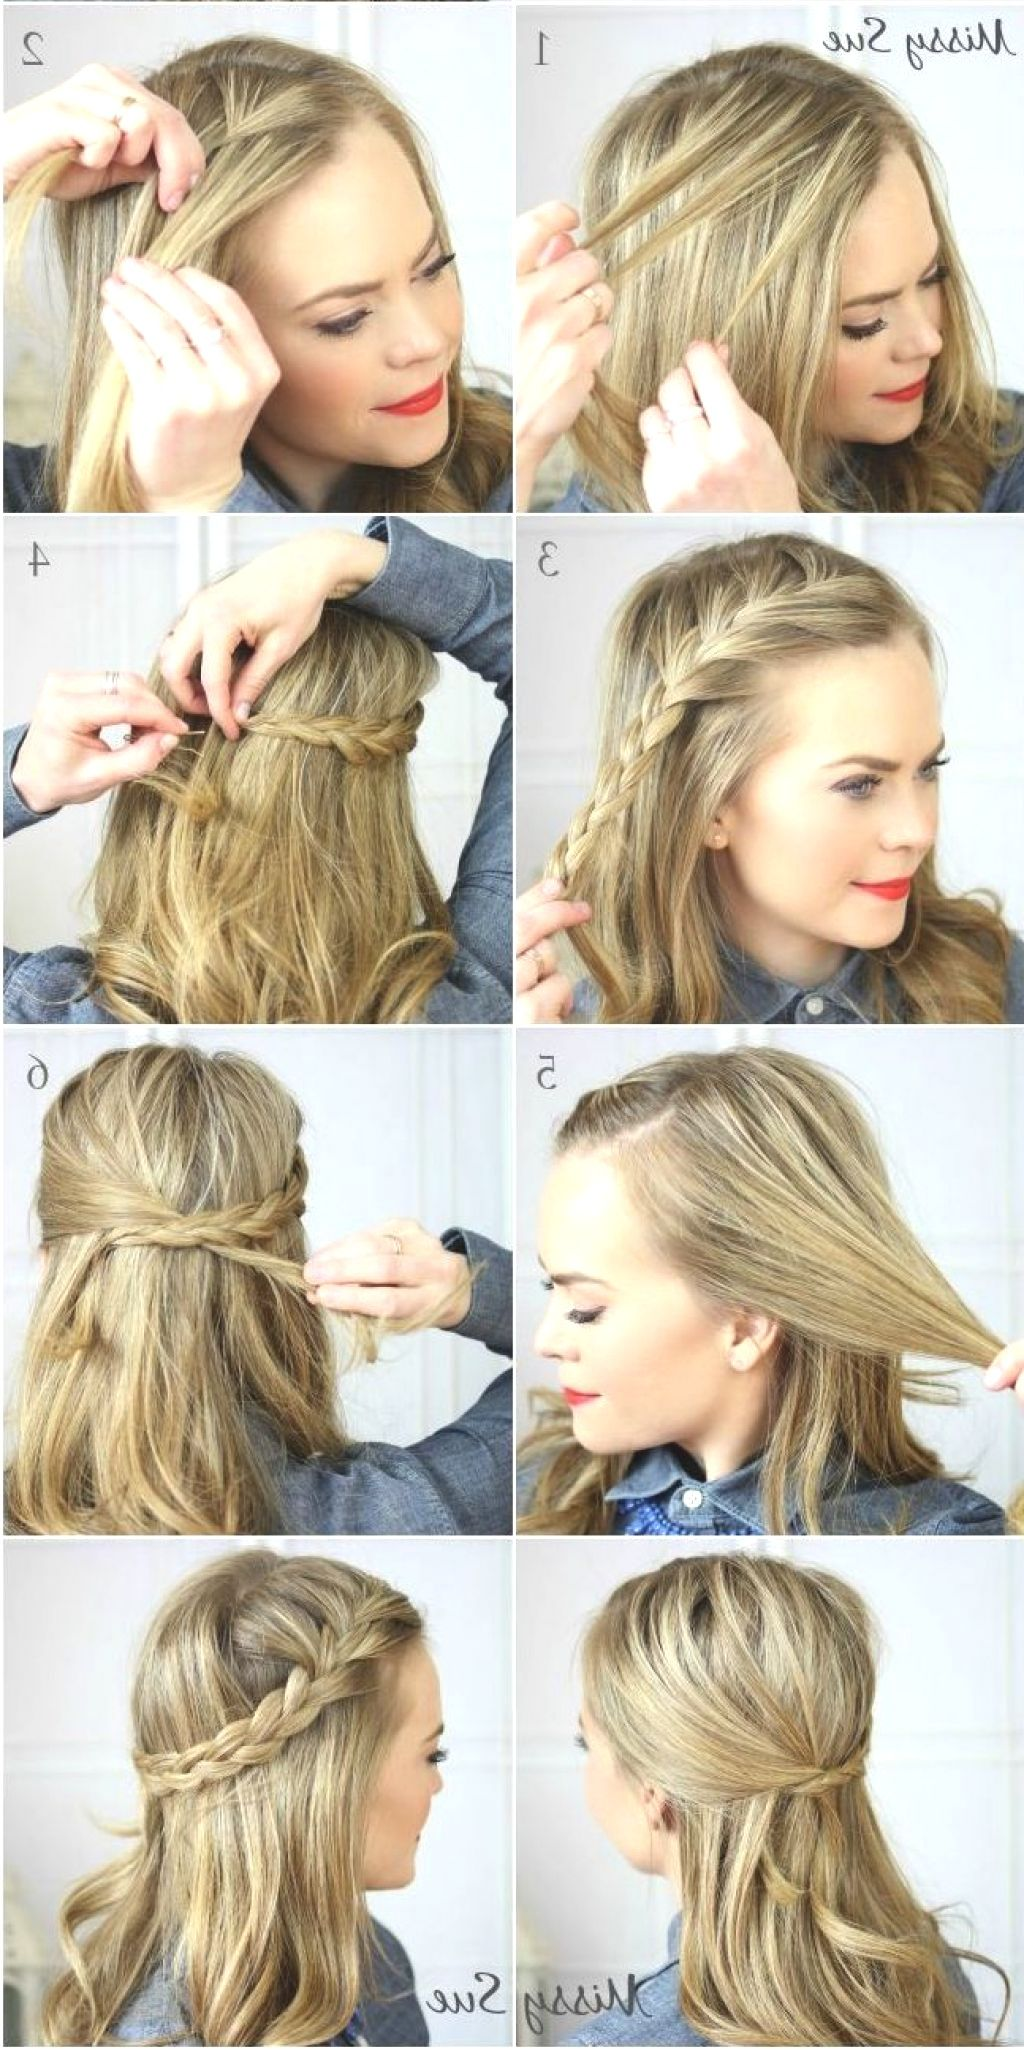 11 Darn Cool Hairstyles For Medium Length Hair Step By Step